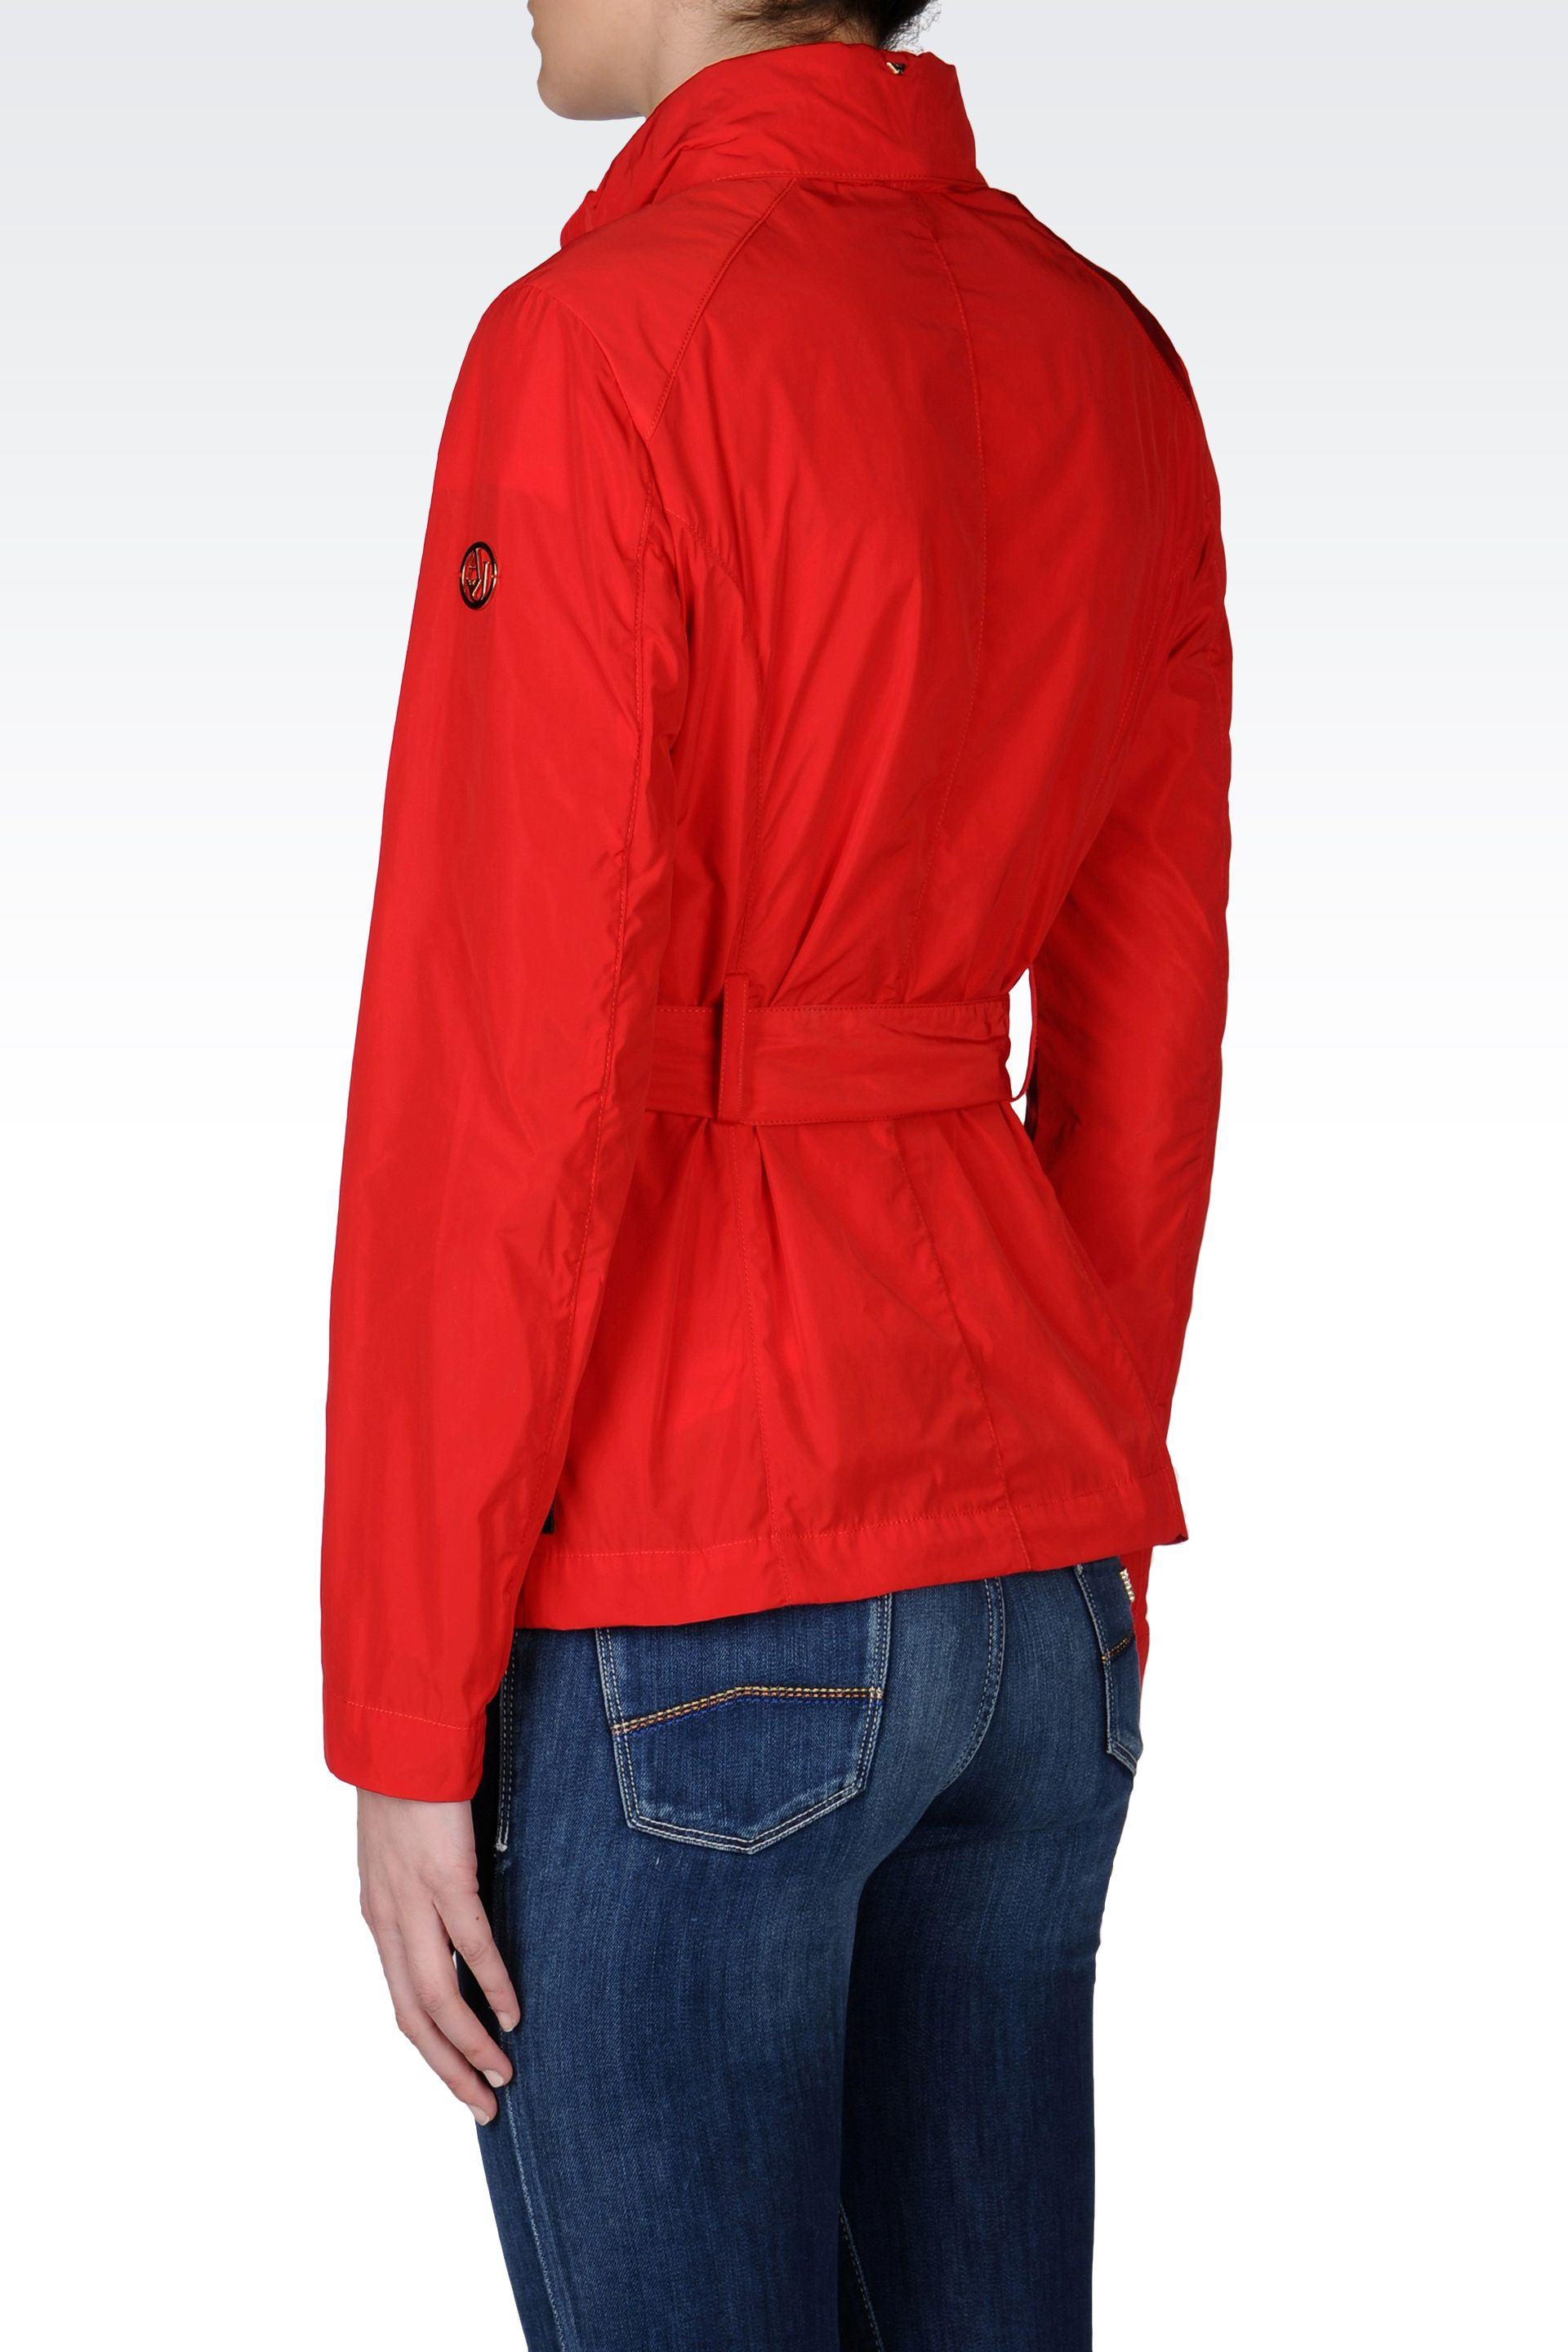 Armani jeans Full Zip Short Pea Coat with Hood in Red | Lyst